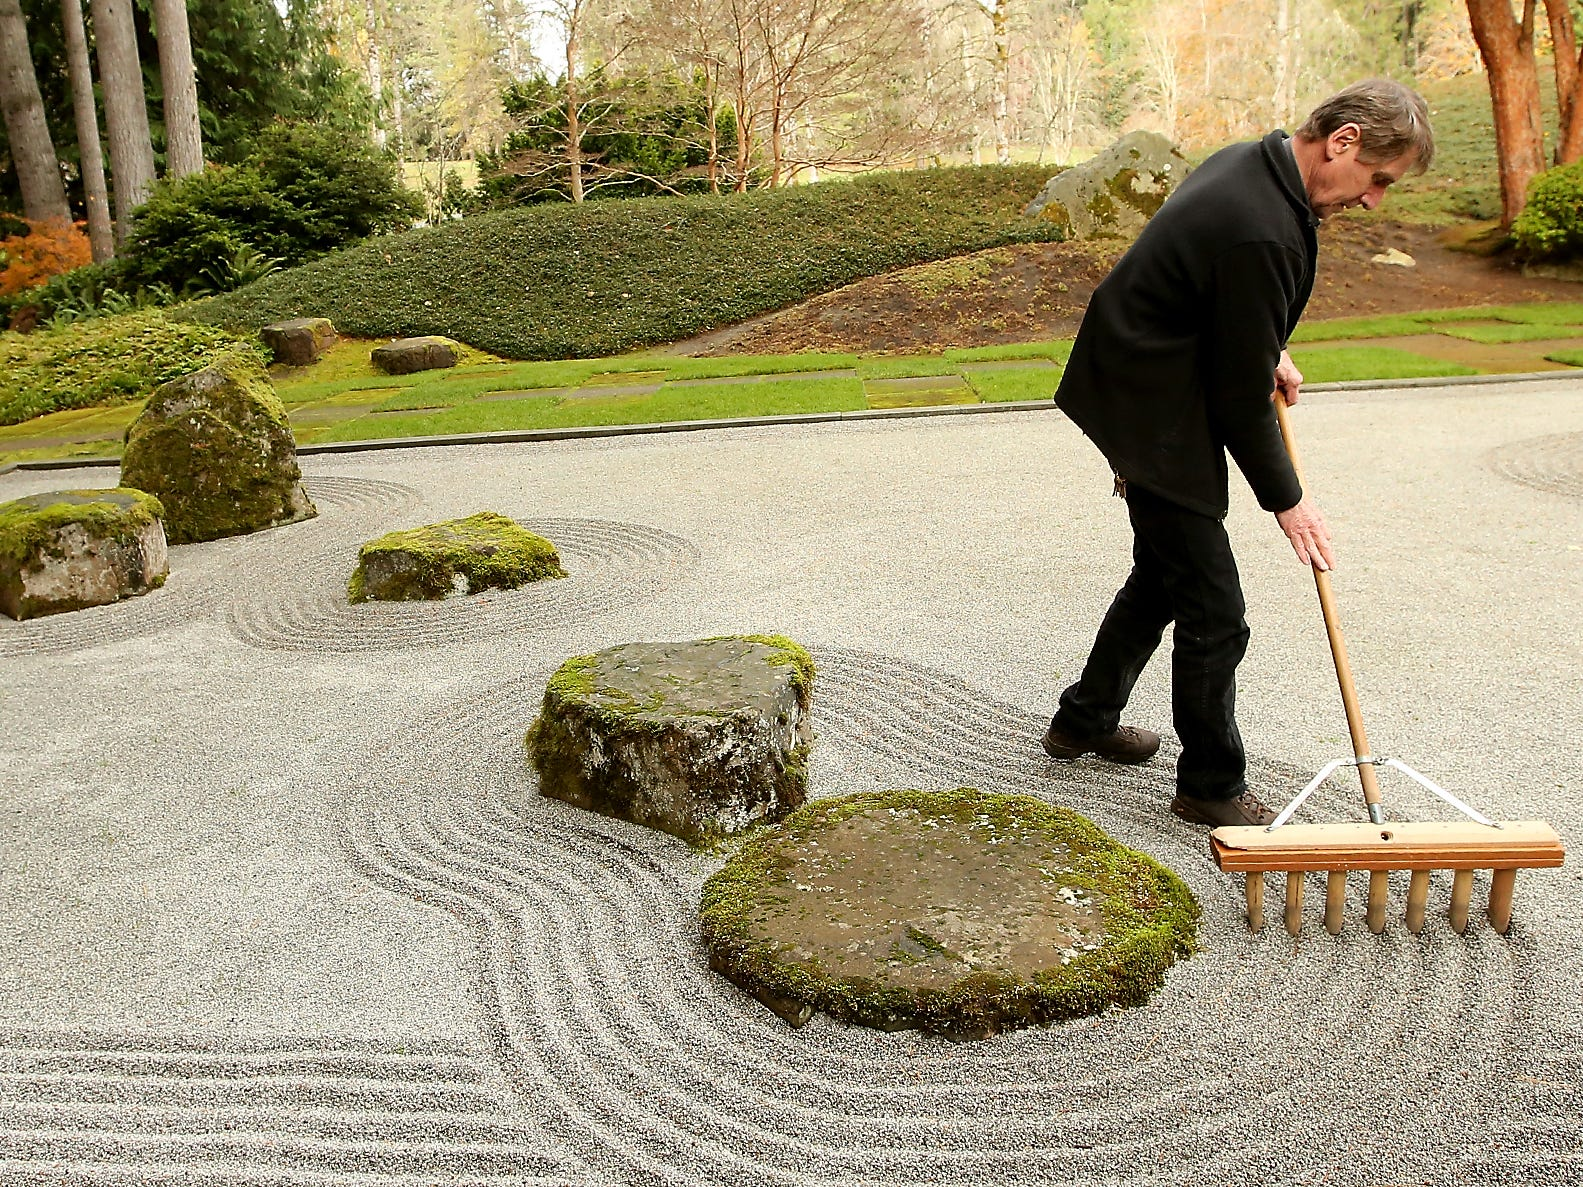 Bloedel Reserve caretaker Bob Braid rakes the rocks of the meditation garden into a design as he gets the Japanese Garden portion of Bloedel ready for visitors on Friday, November 16, 2018.